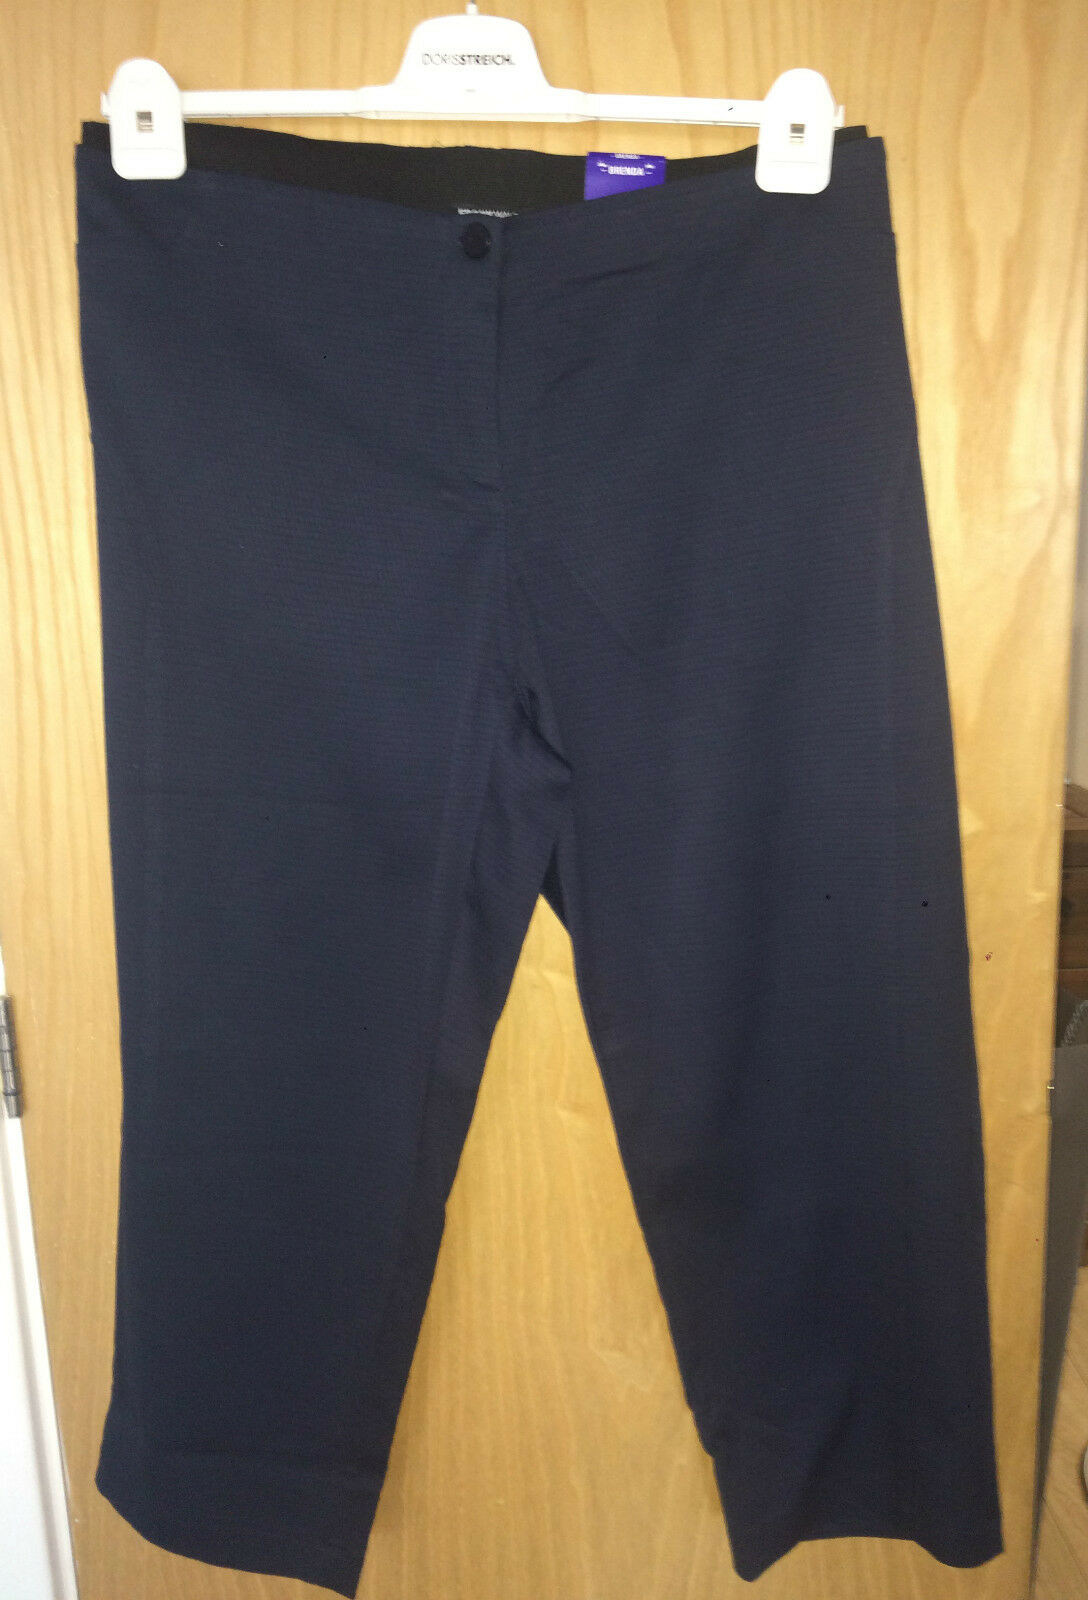 NWT FRANK WALDER  BRENDA  NAVY TEXTURED CROPPED TROUSERS SZ 26 RRP